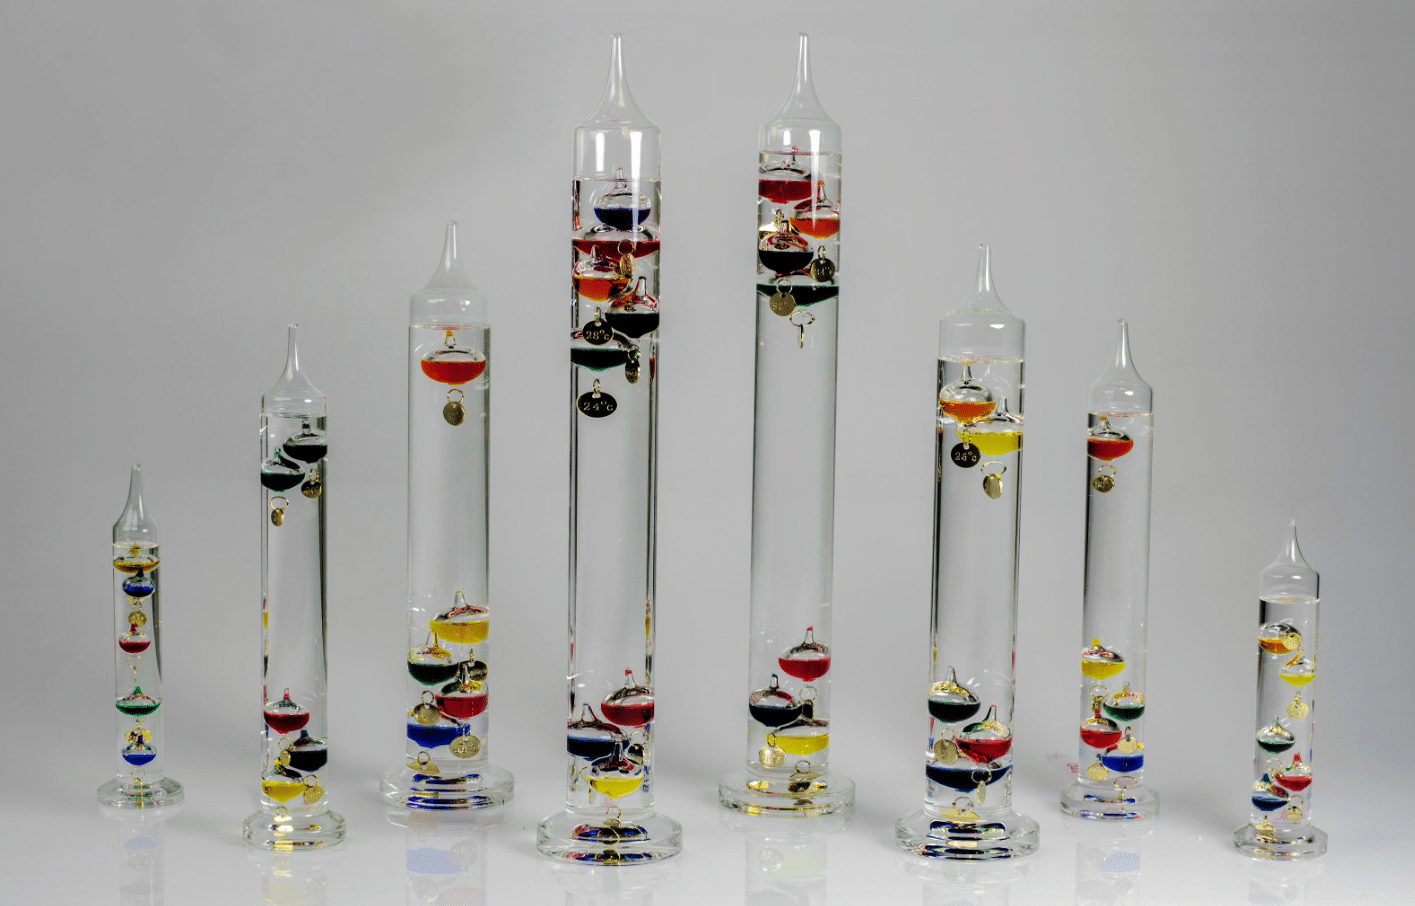 Galilean thermometer decoration